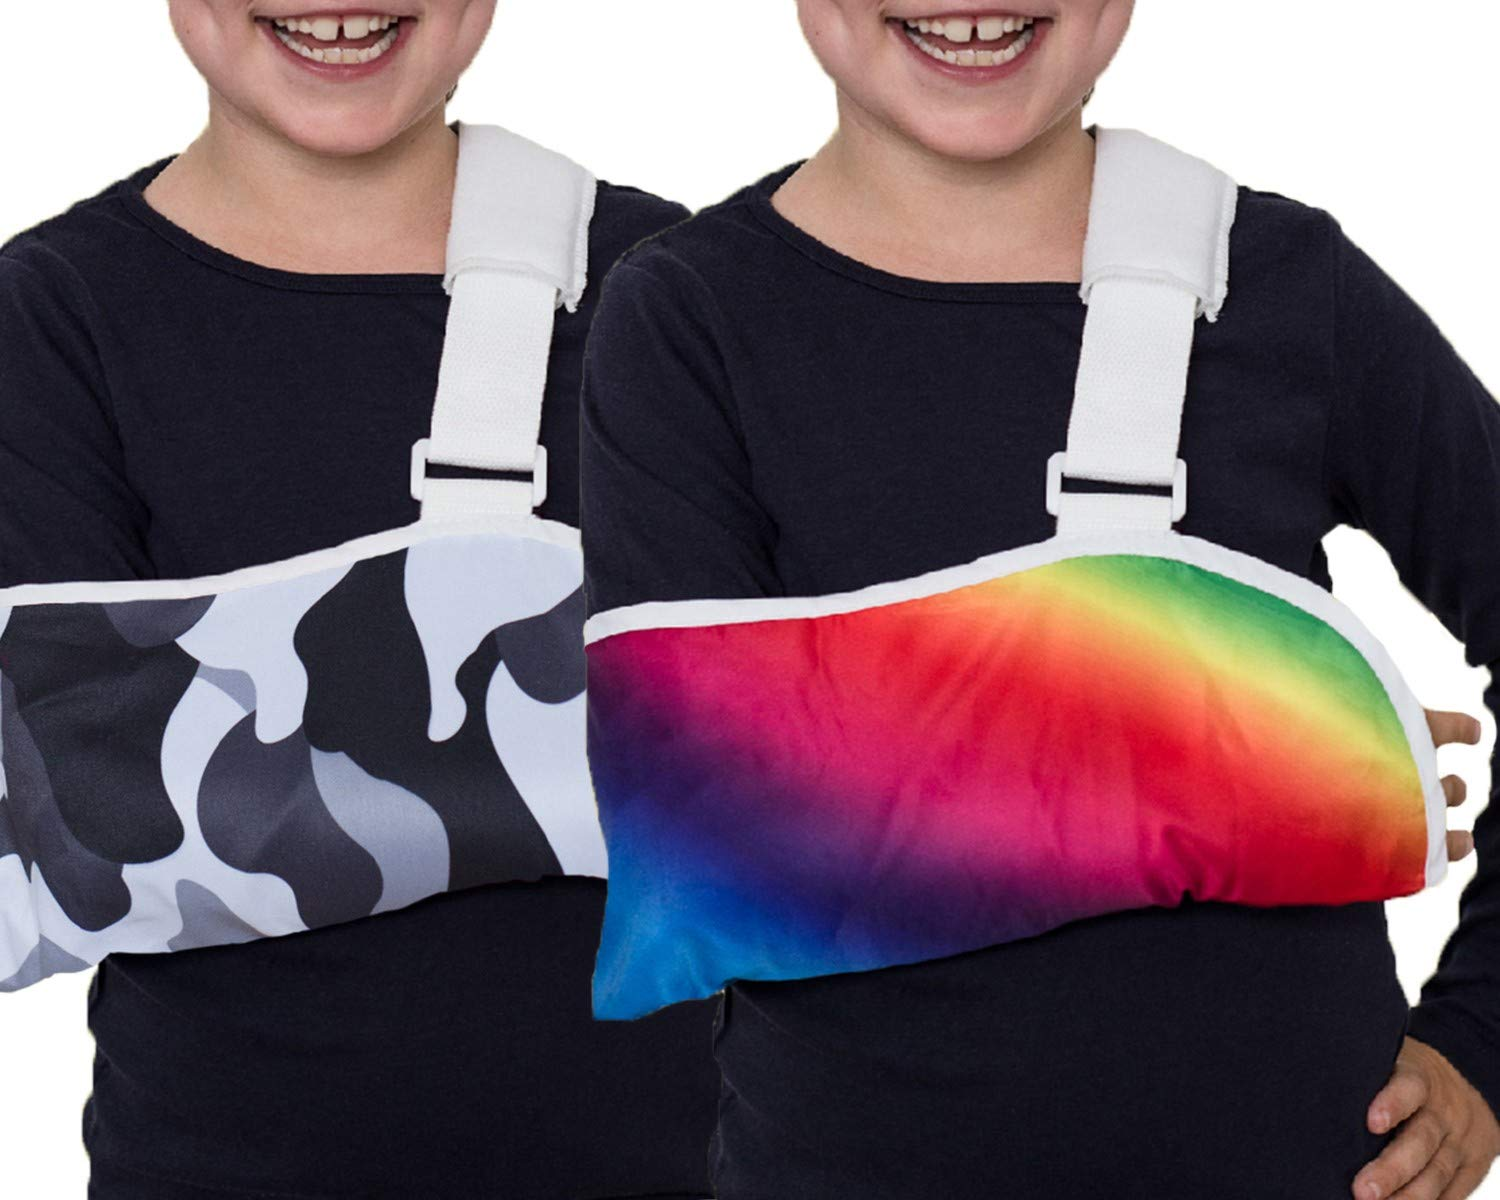 Crazy Casts Arm Sling for Kids - Childrens Arm Support Sling   Premium Designer Arm Slings for Kids for Broken Collarbone or Cast Cover   Small to Large Size for Boys Girls Youth Ages 4+ by Crazy Casts Pty Ltd